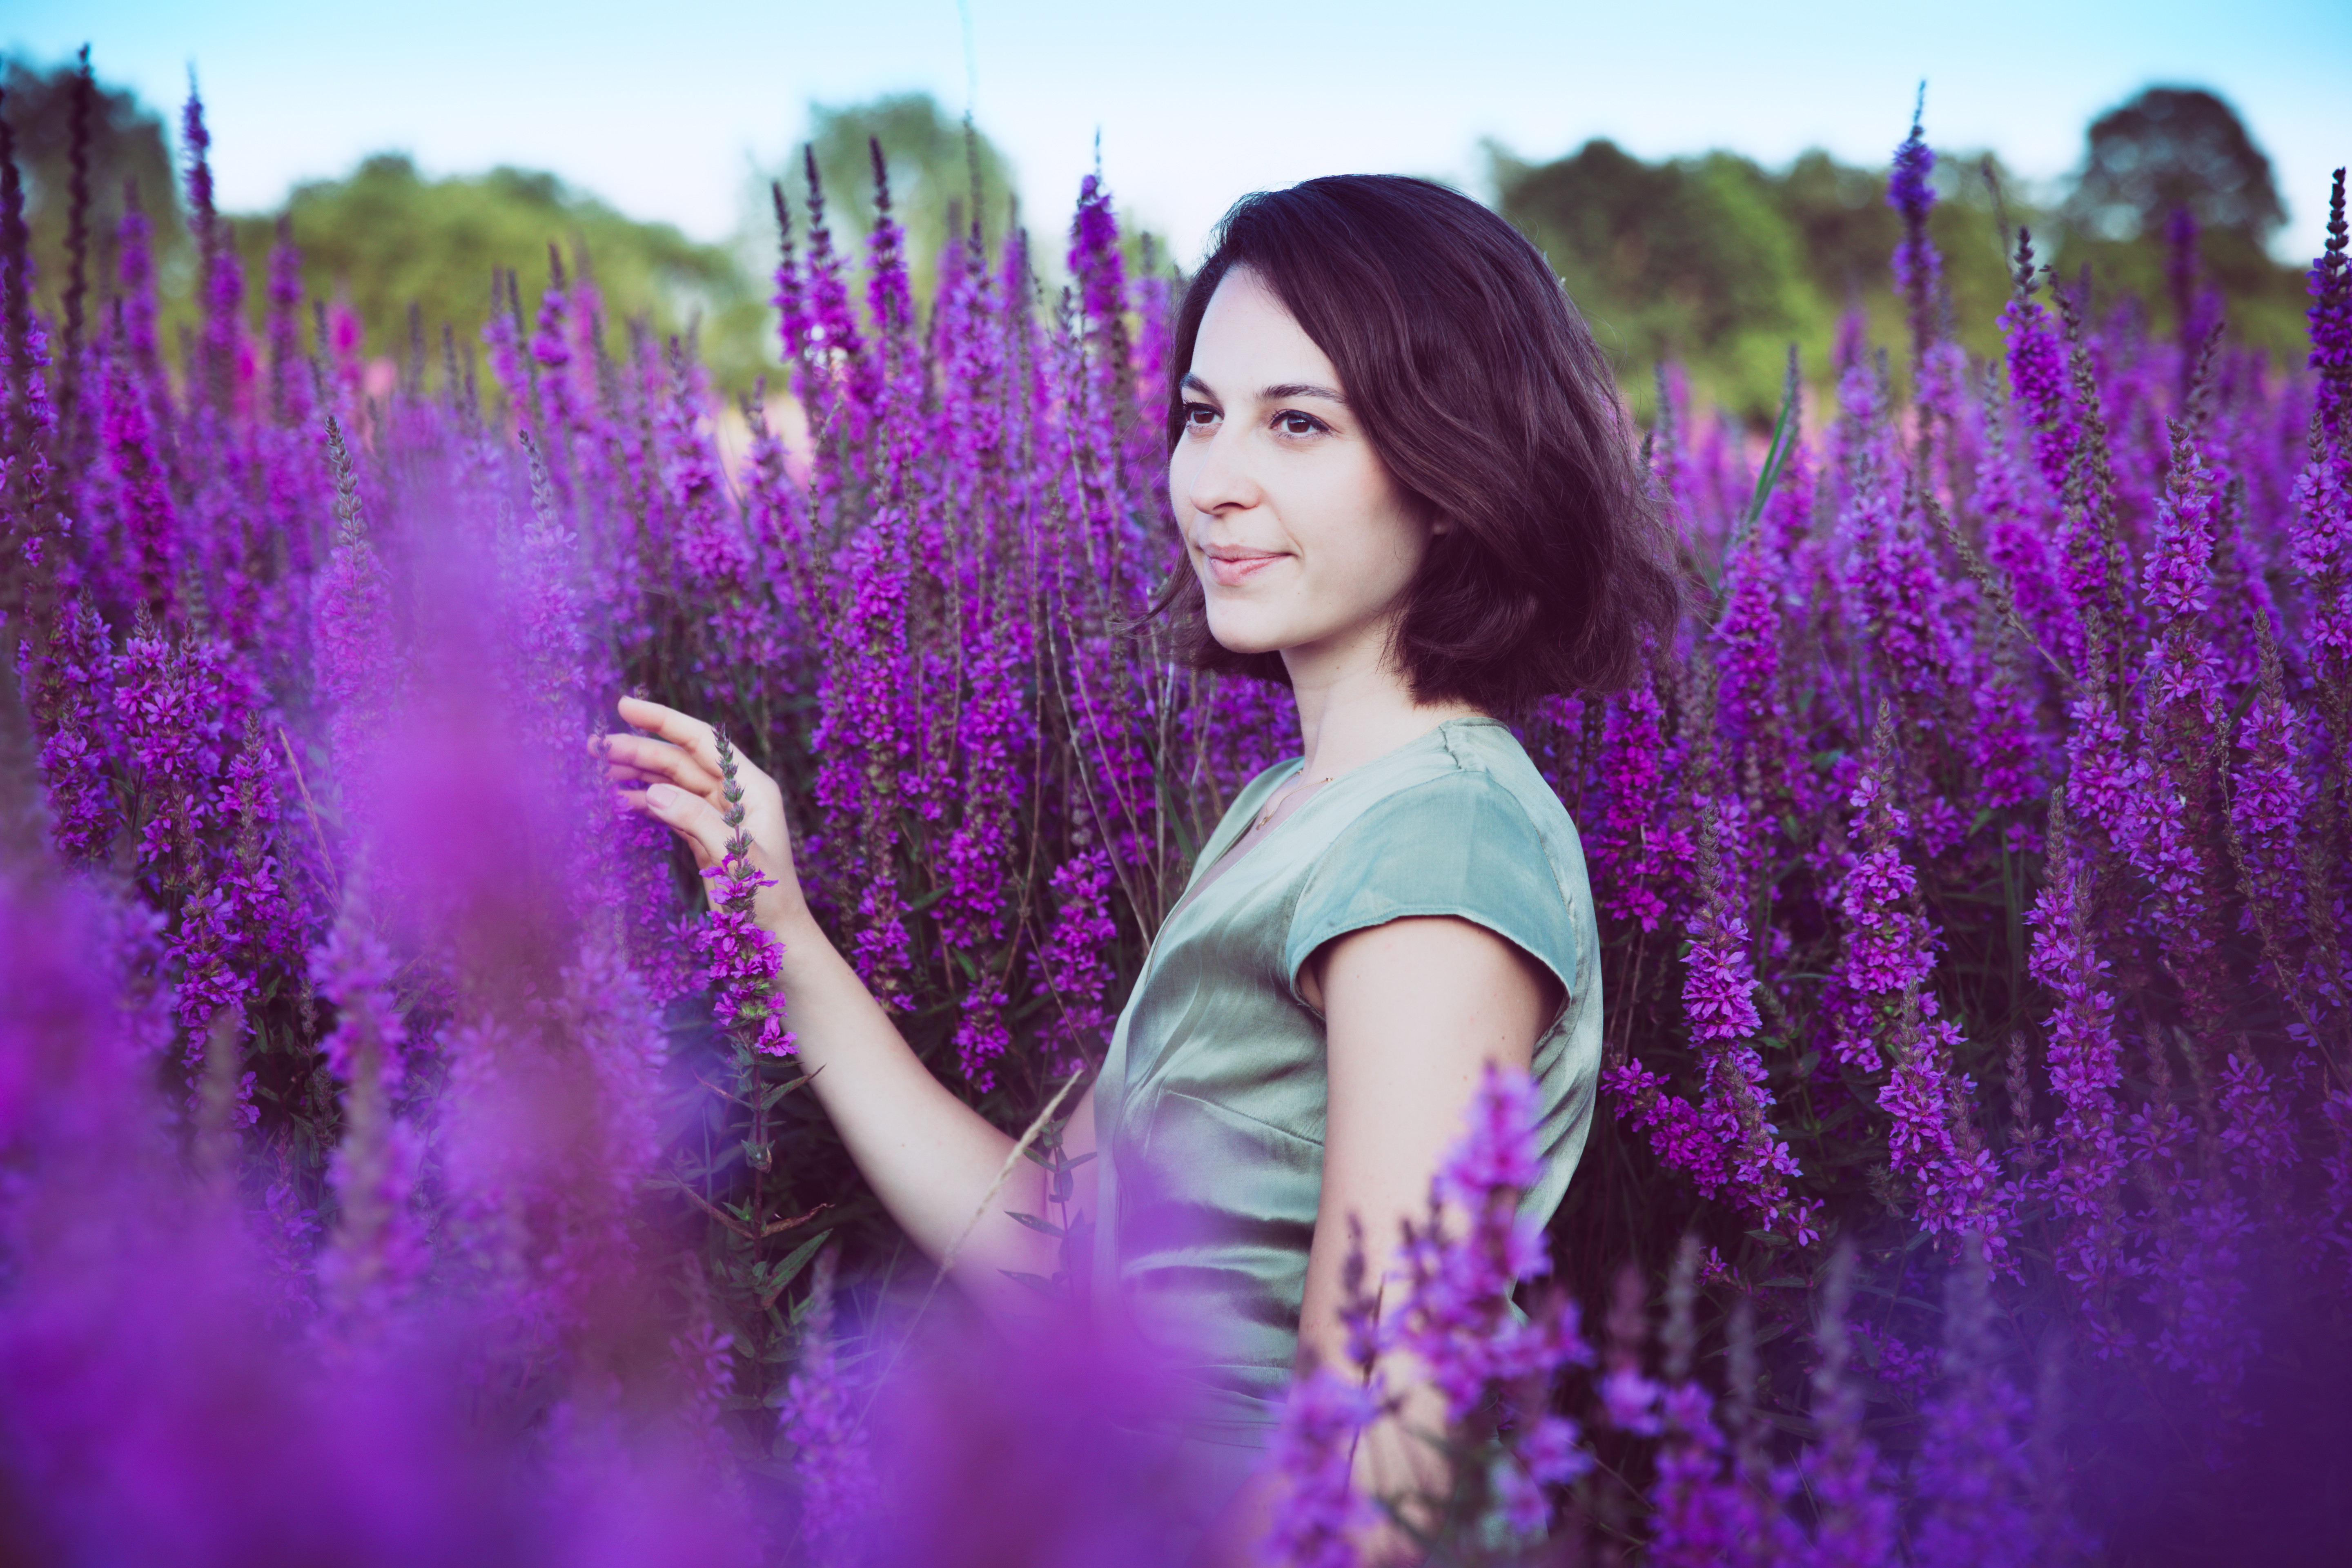 Outdoor Portraits - small